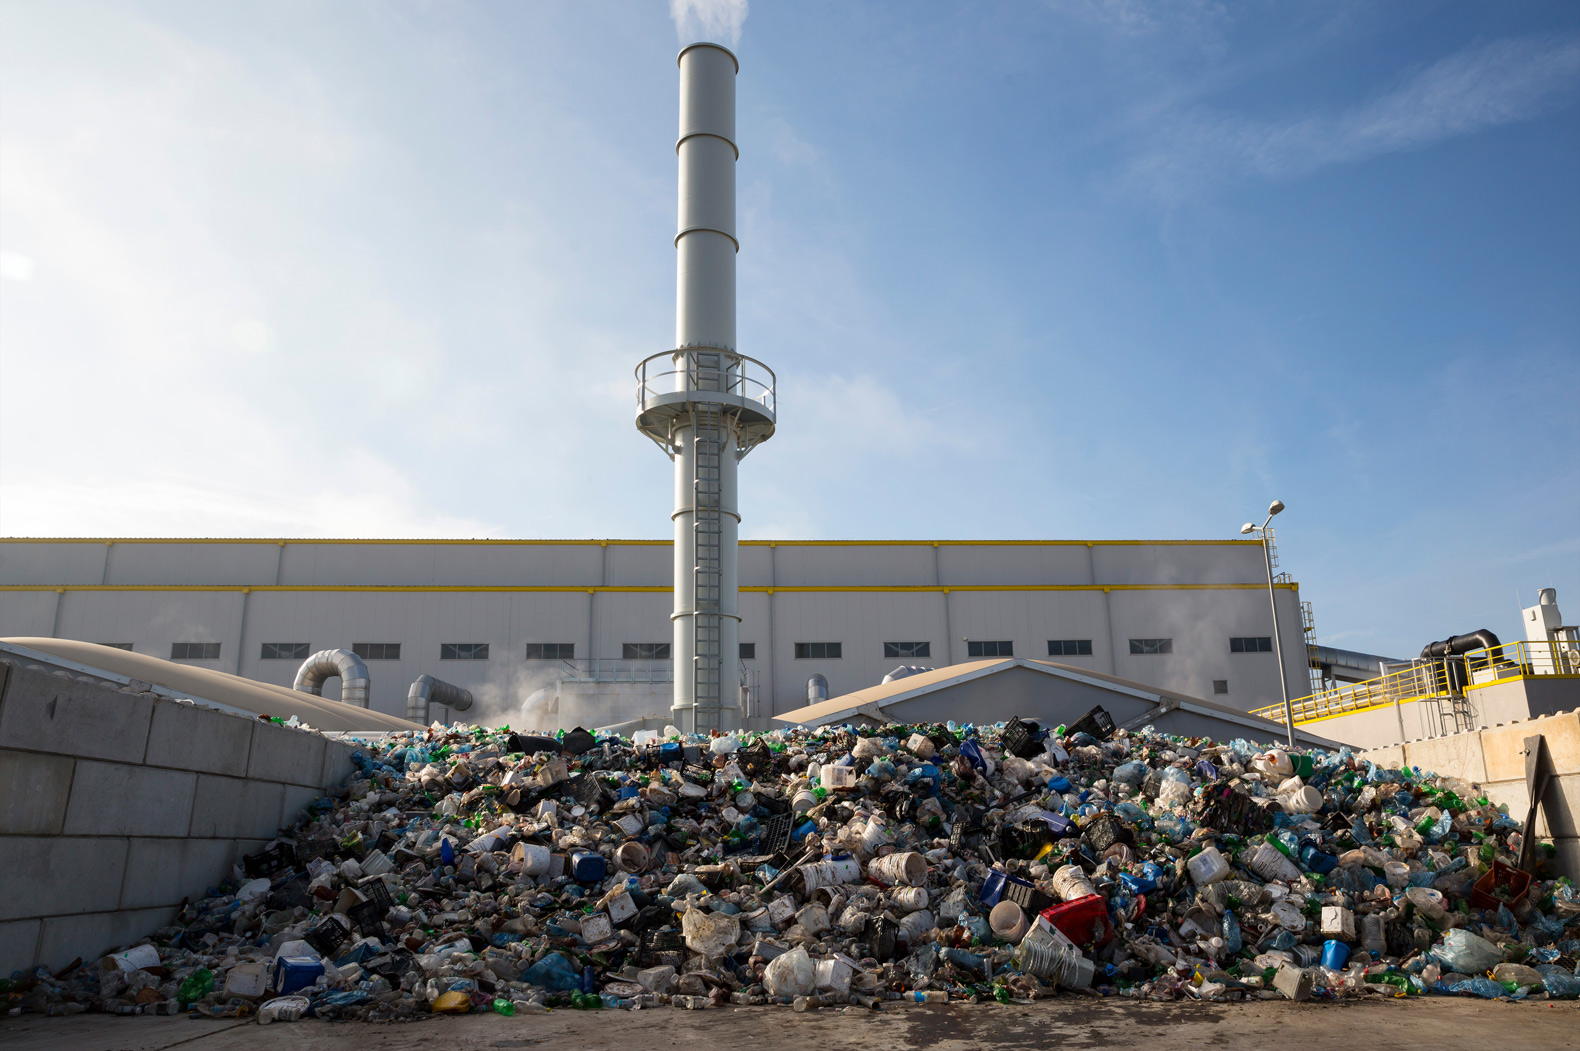 Are bioenergy facilities the solution to the growing garbage problem?